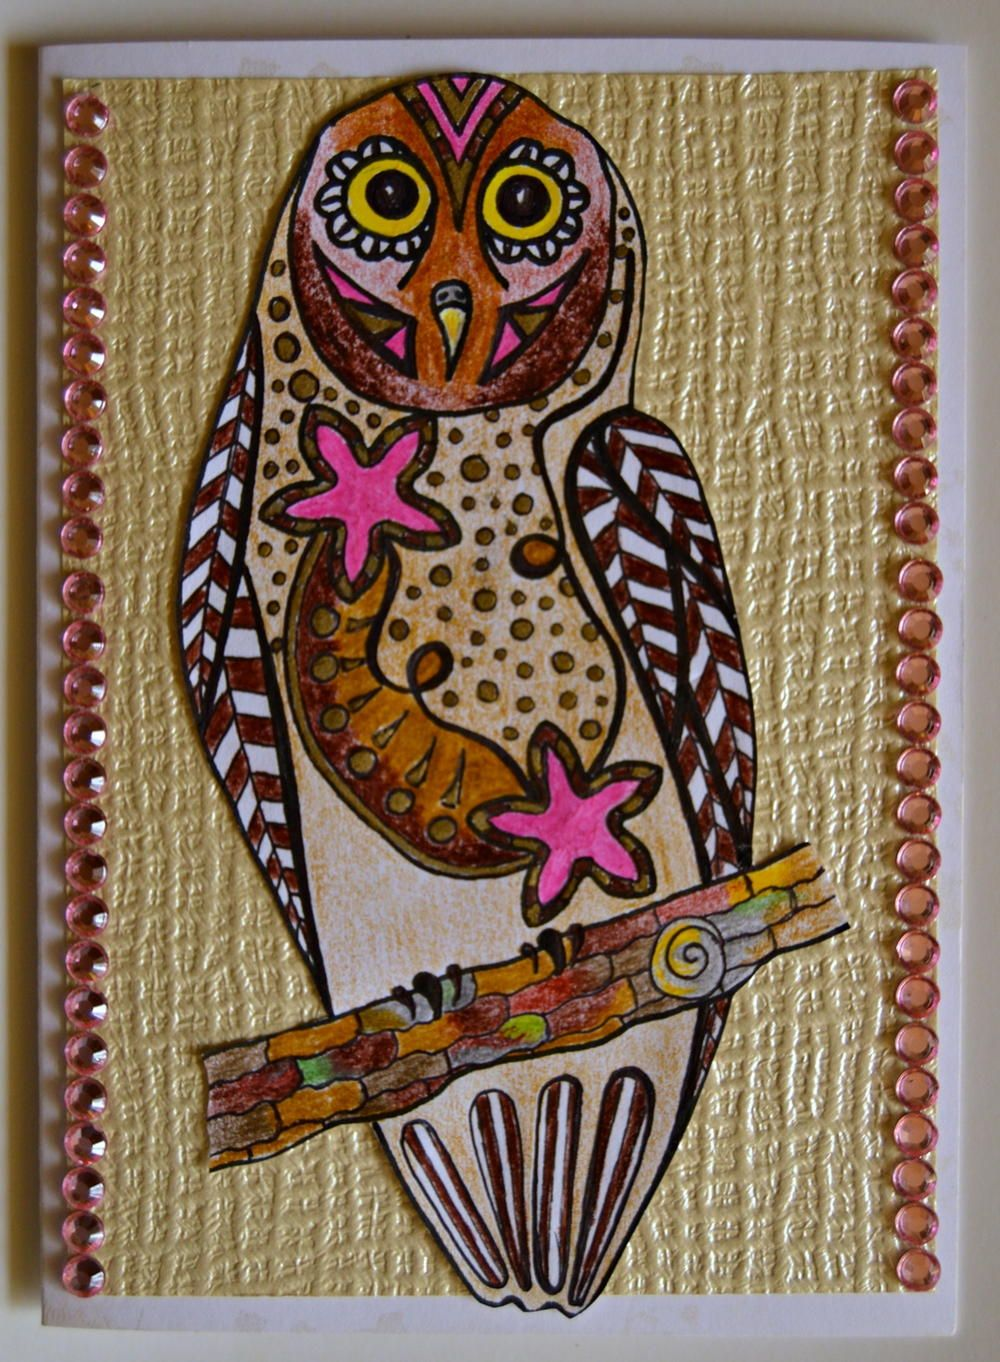 Bejeweled Owl Homemade Birthday Card Homemade Birthday Cards Card Design Handmade Owl Coloring Pages